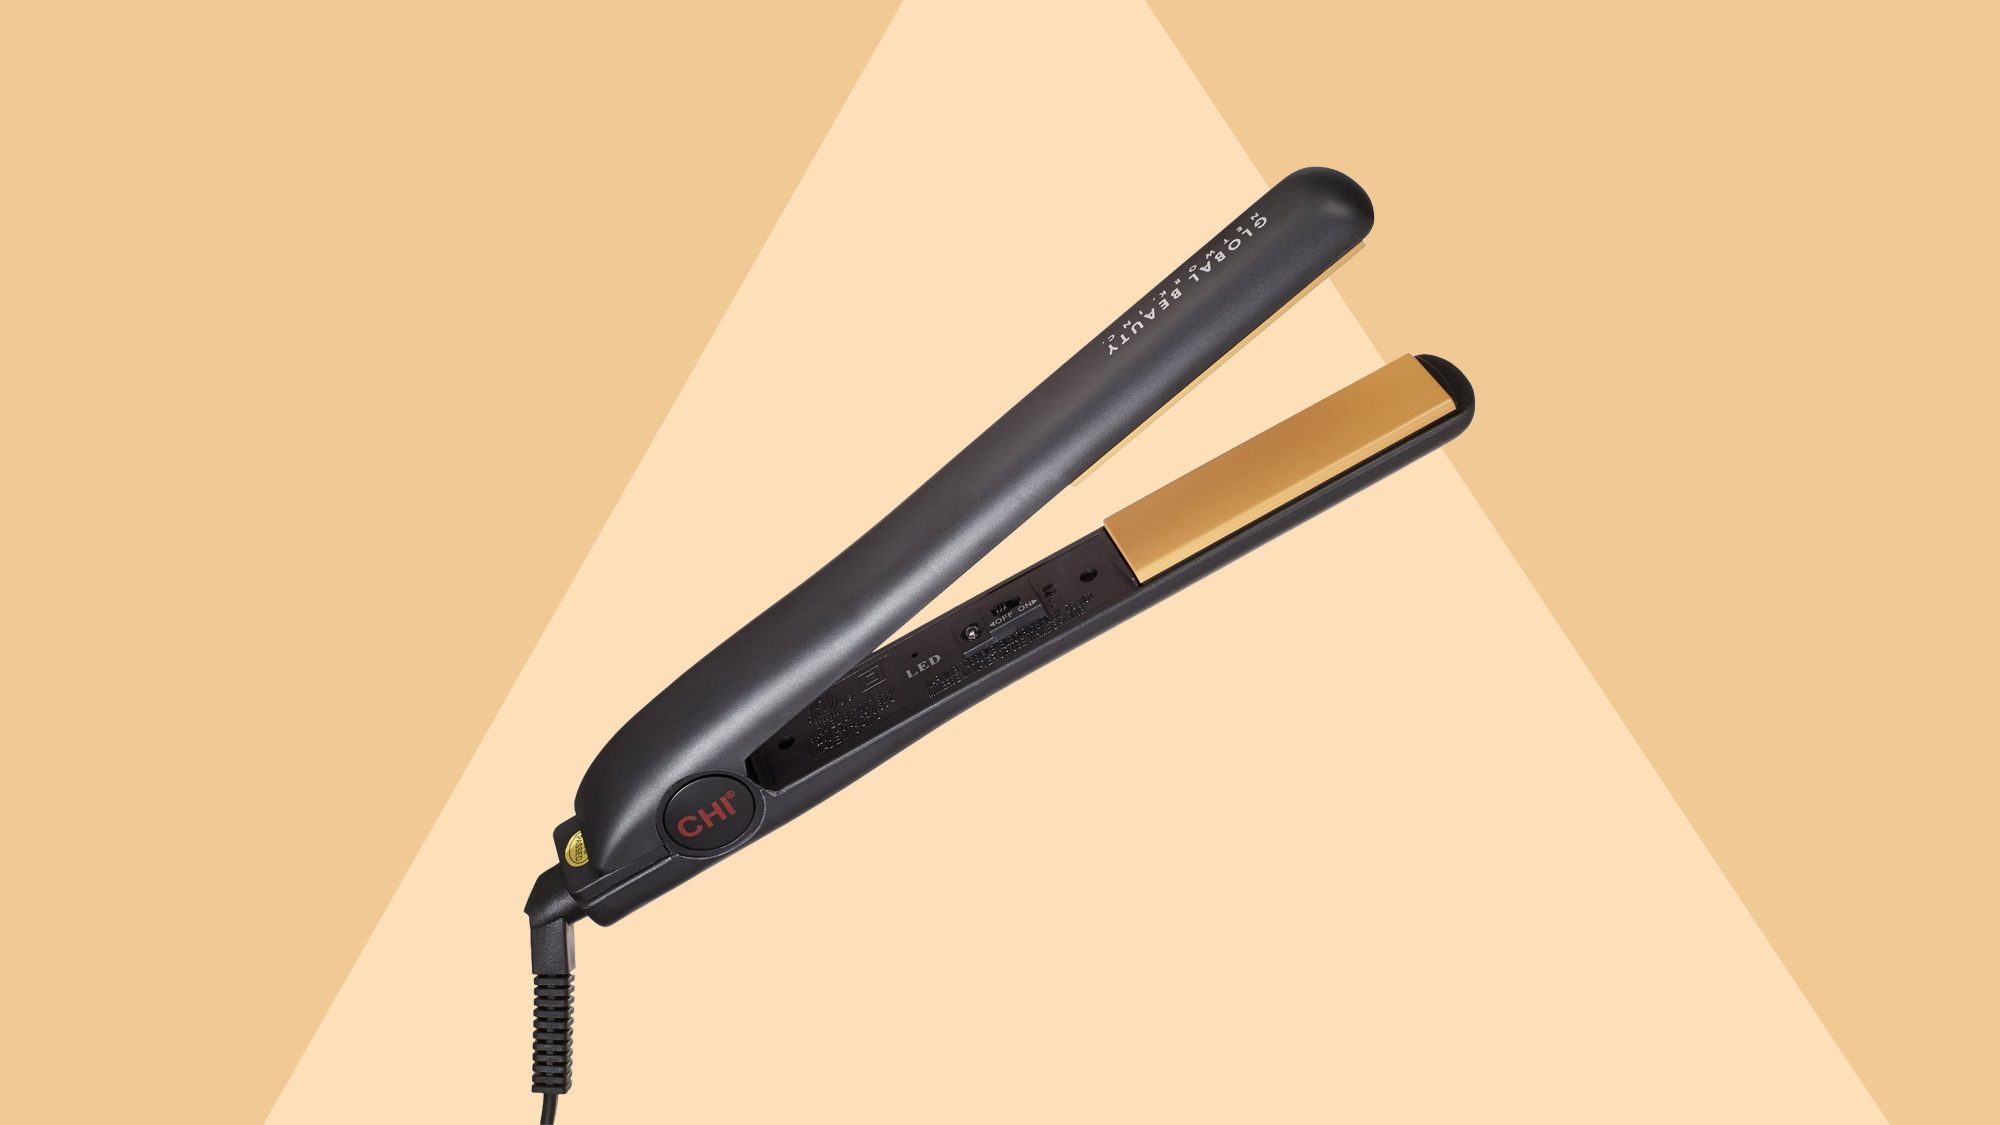 CHI Original Ceramic Hair Straightening Flat Iron